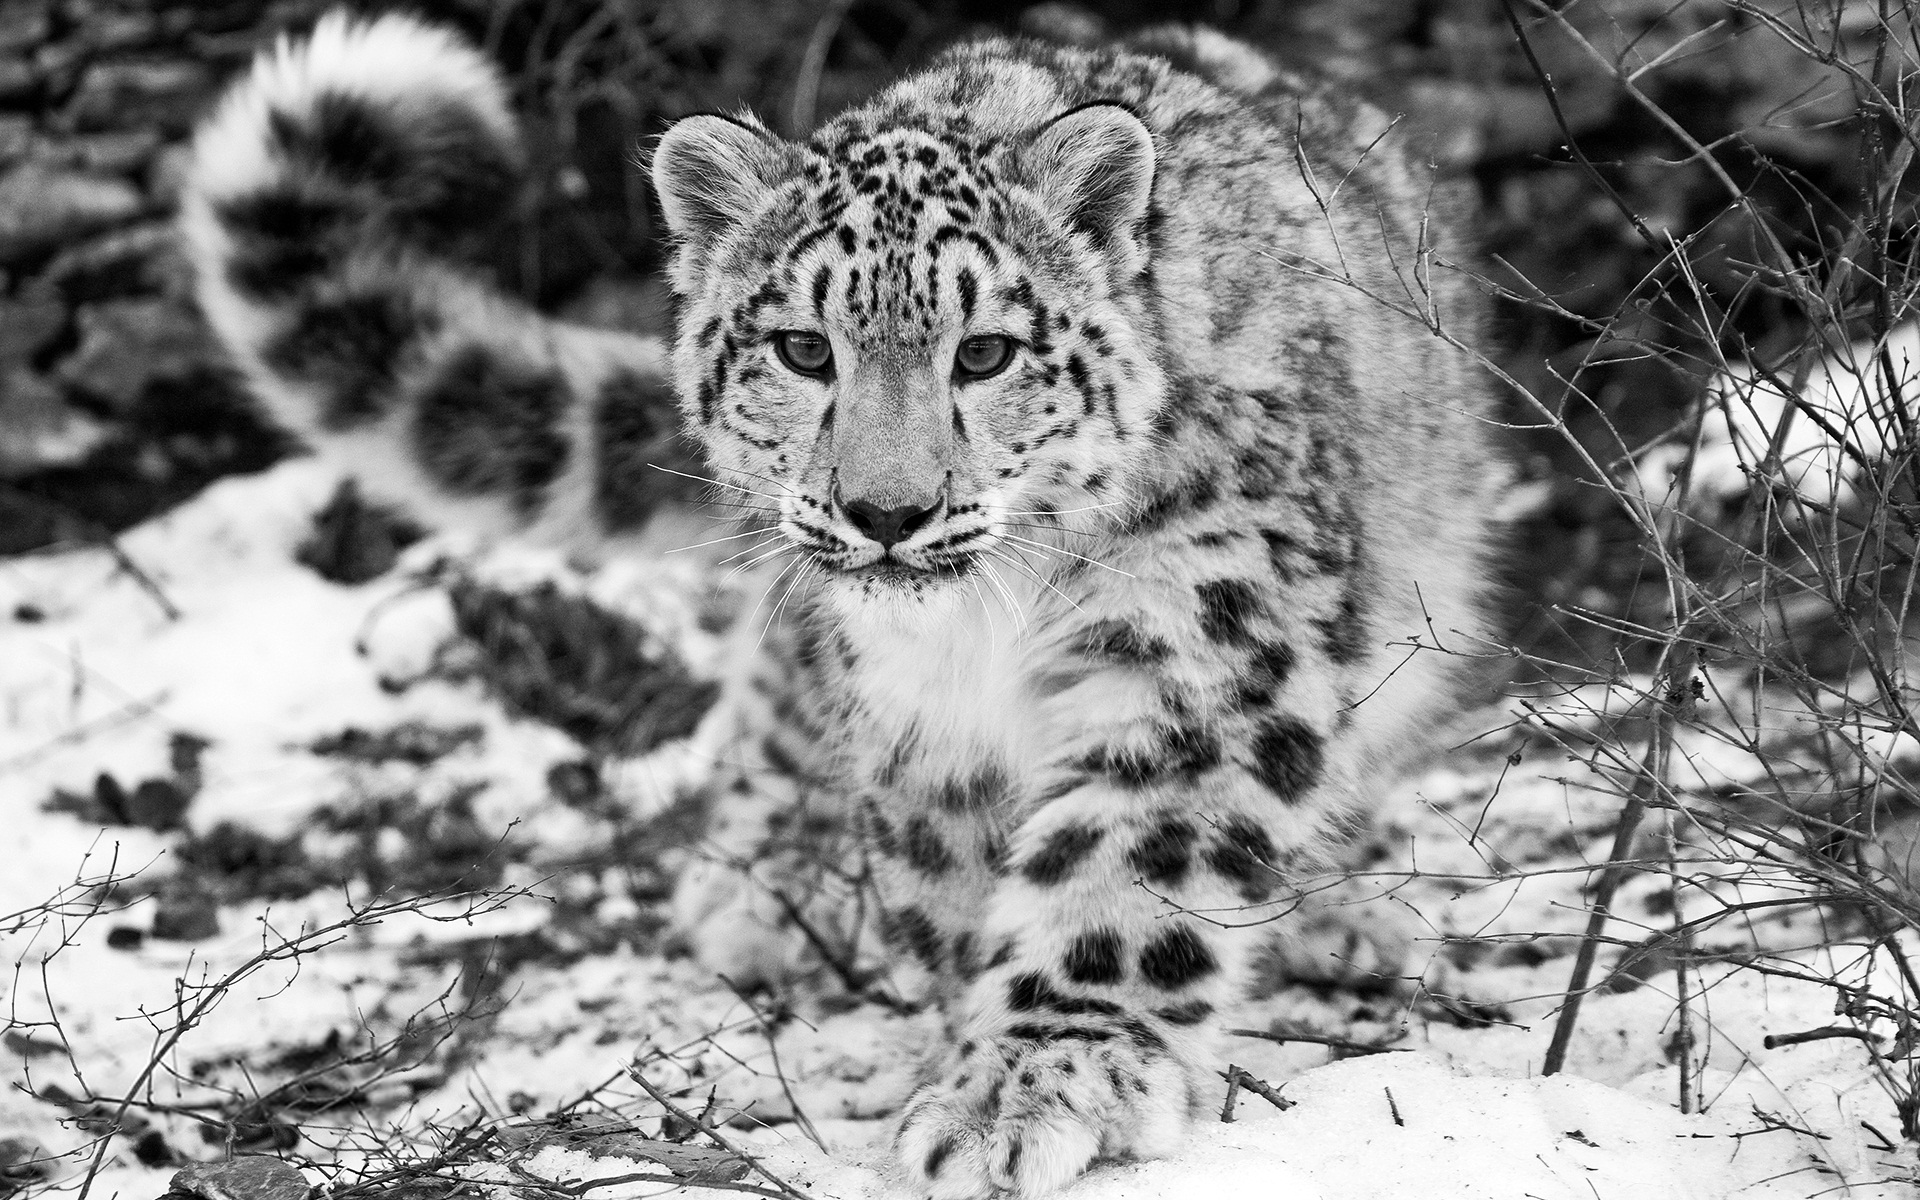 Download Full HD Wallpapers absolutely free for your pc desktop, laptop and mobile devices. Cute Snow Leopard hd wallpapers